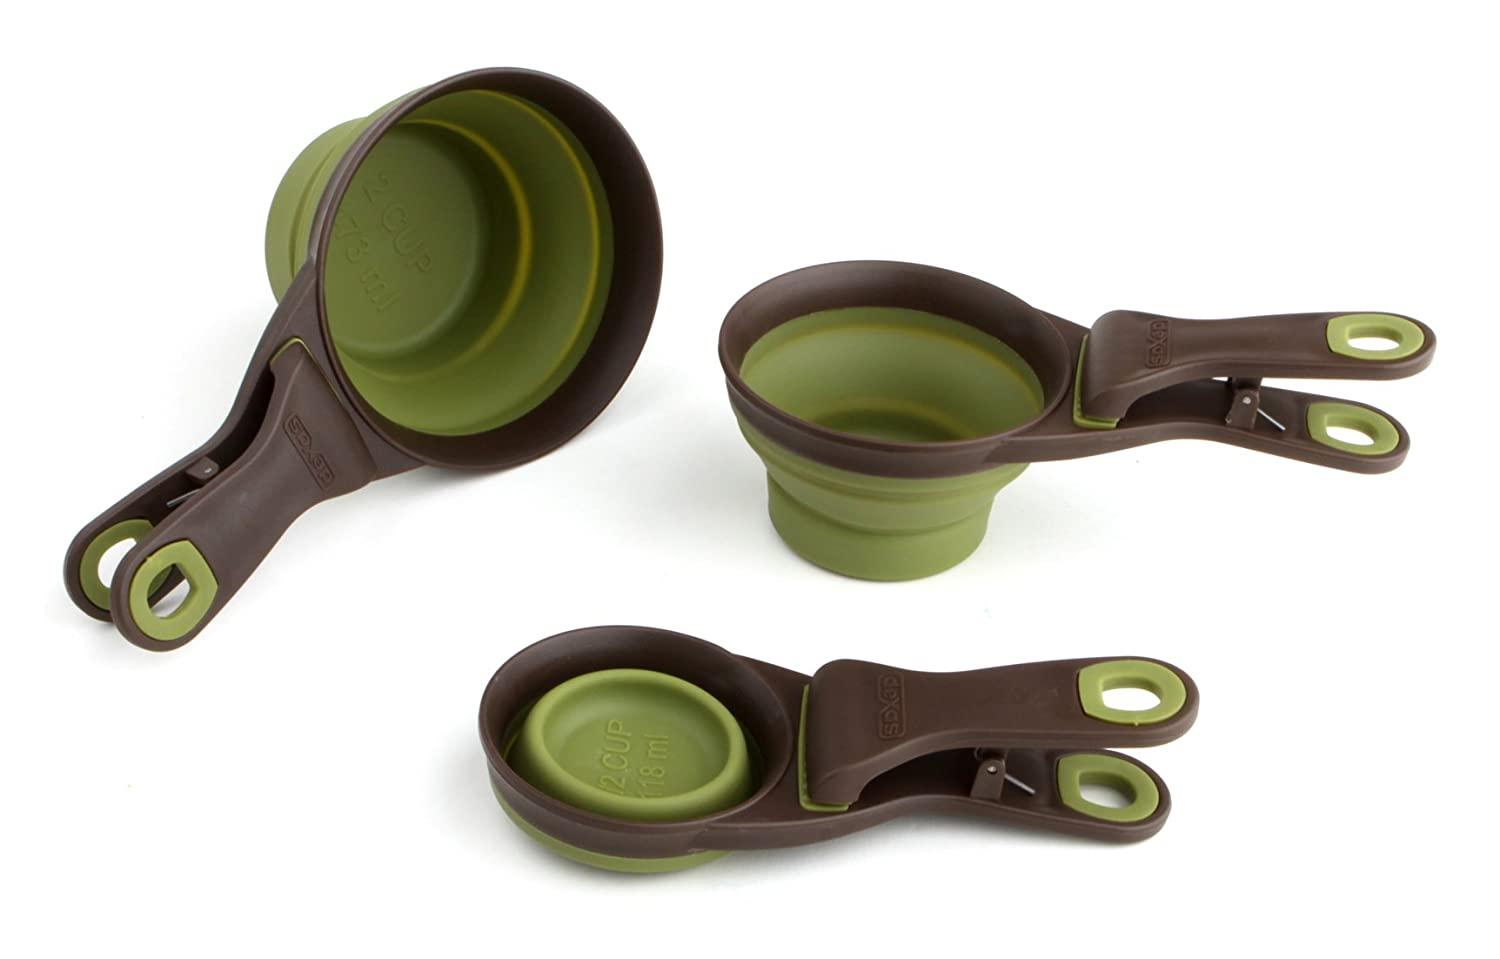 Green 1 2 Cup Green 1 2 Cup Dexas 1 2-Cup Collapsible Klip Scoop for Pets, Green